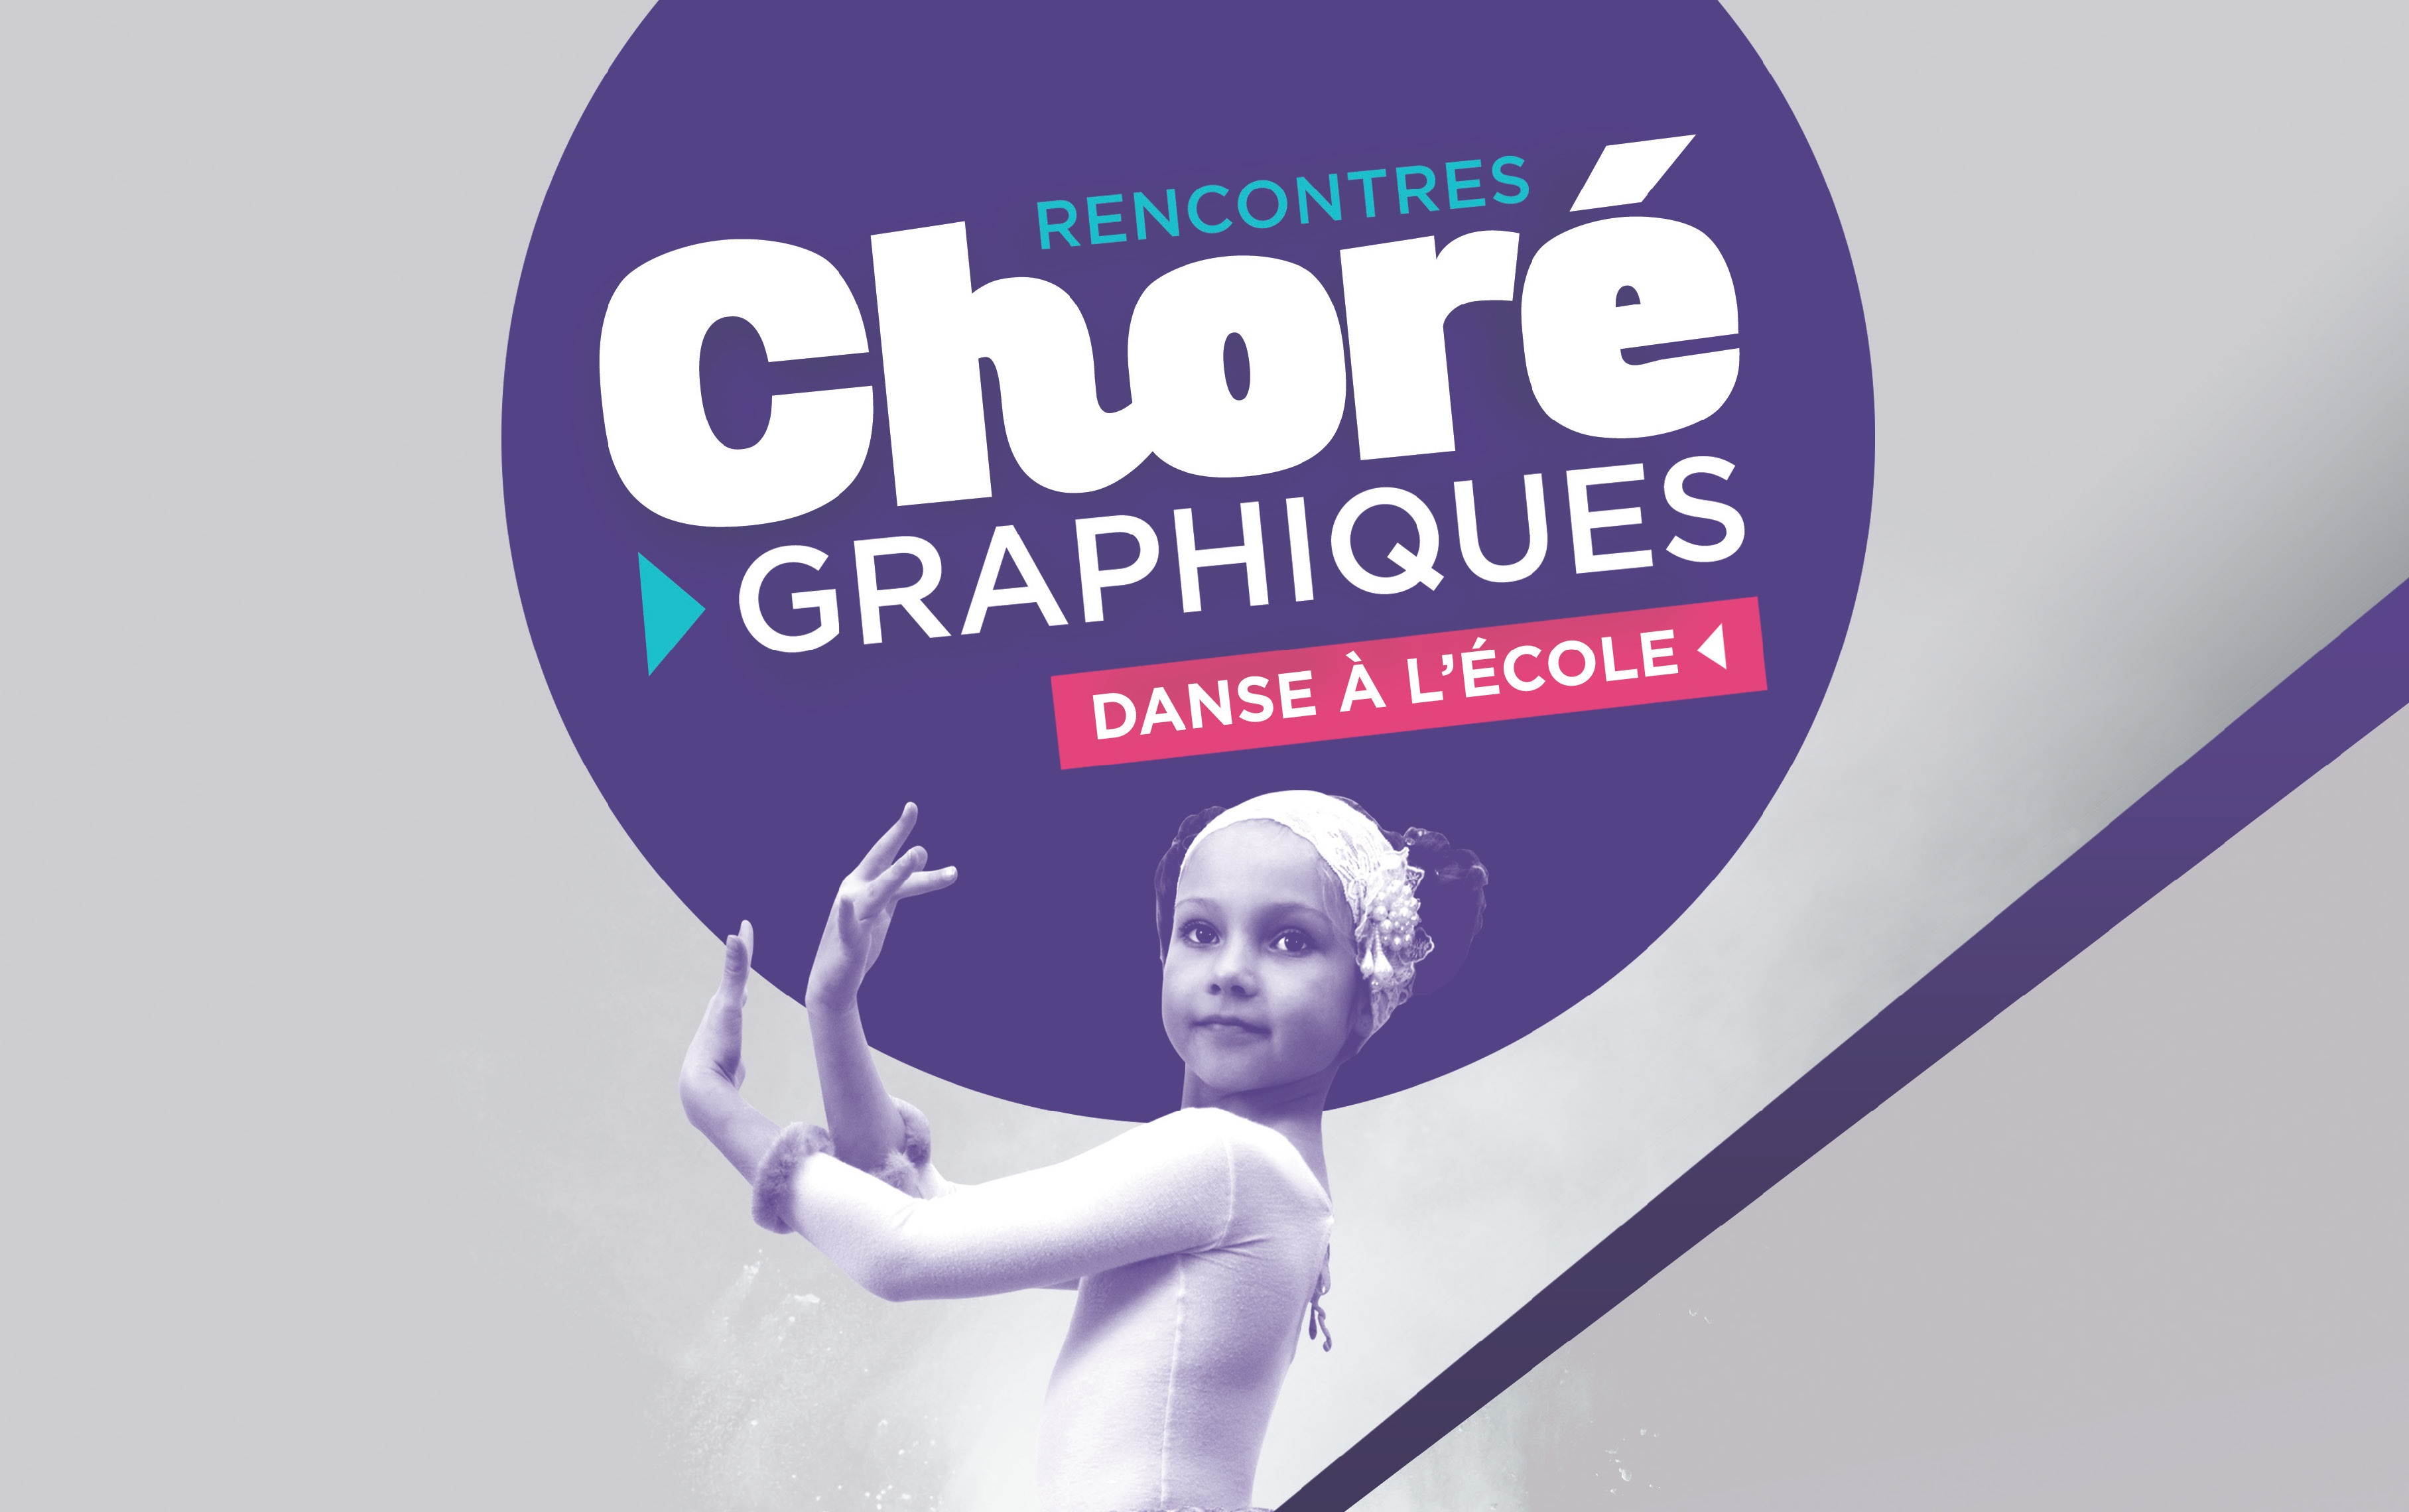 Rencontres chartres